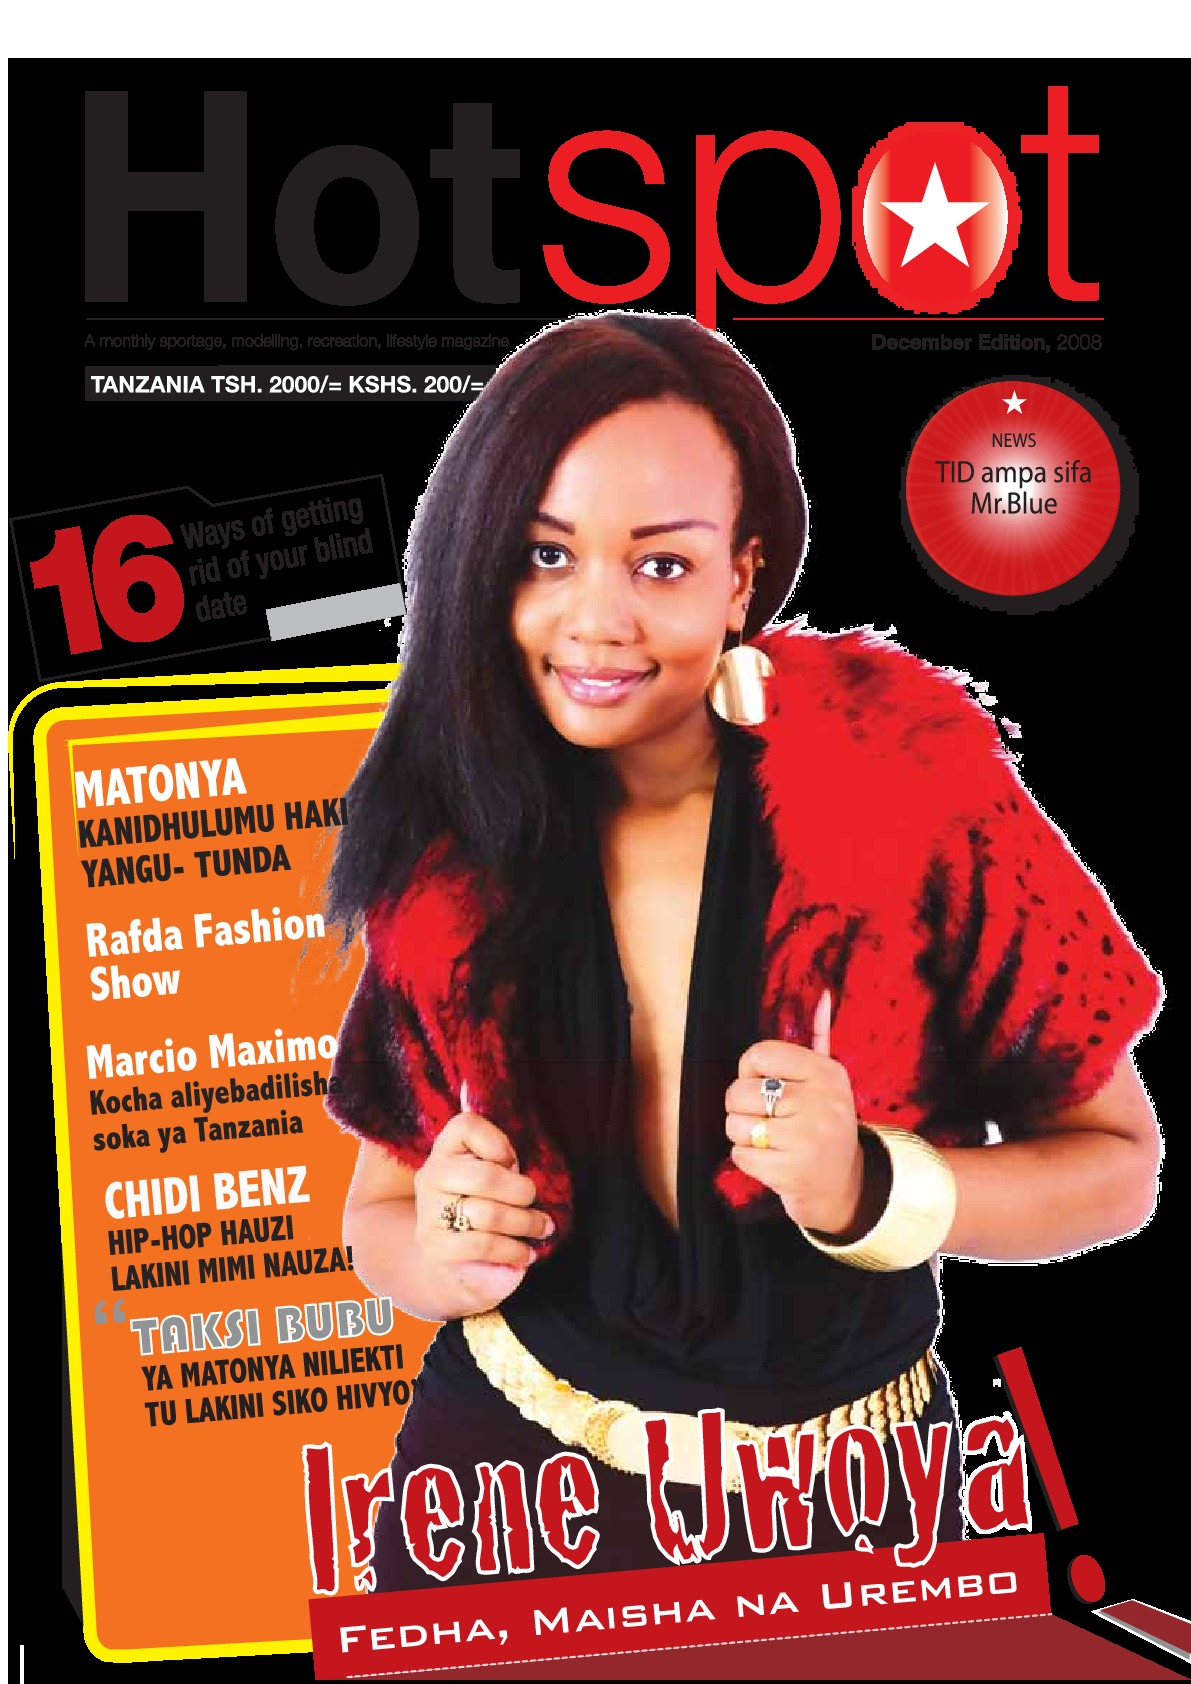 The First Issue of Hotspot with Irene Uwoya on the Cover. | HotSpot Magazine